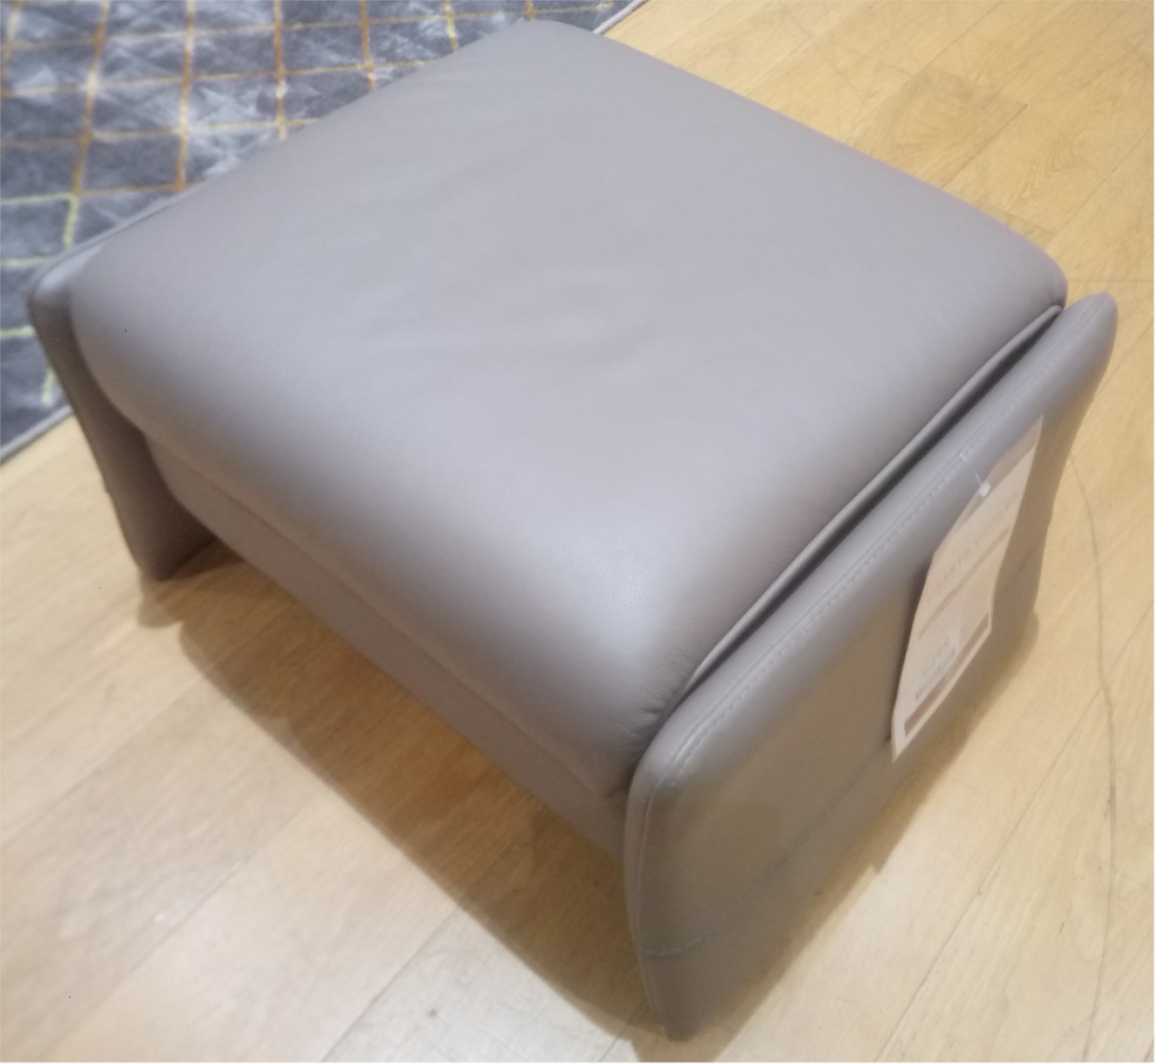 Cumuly Footstool